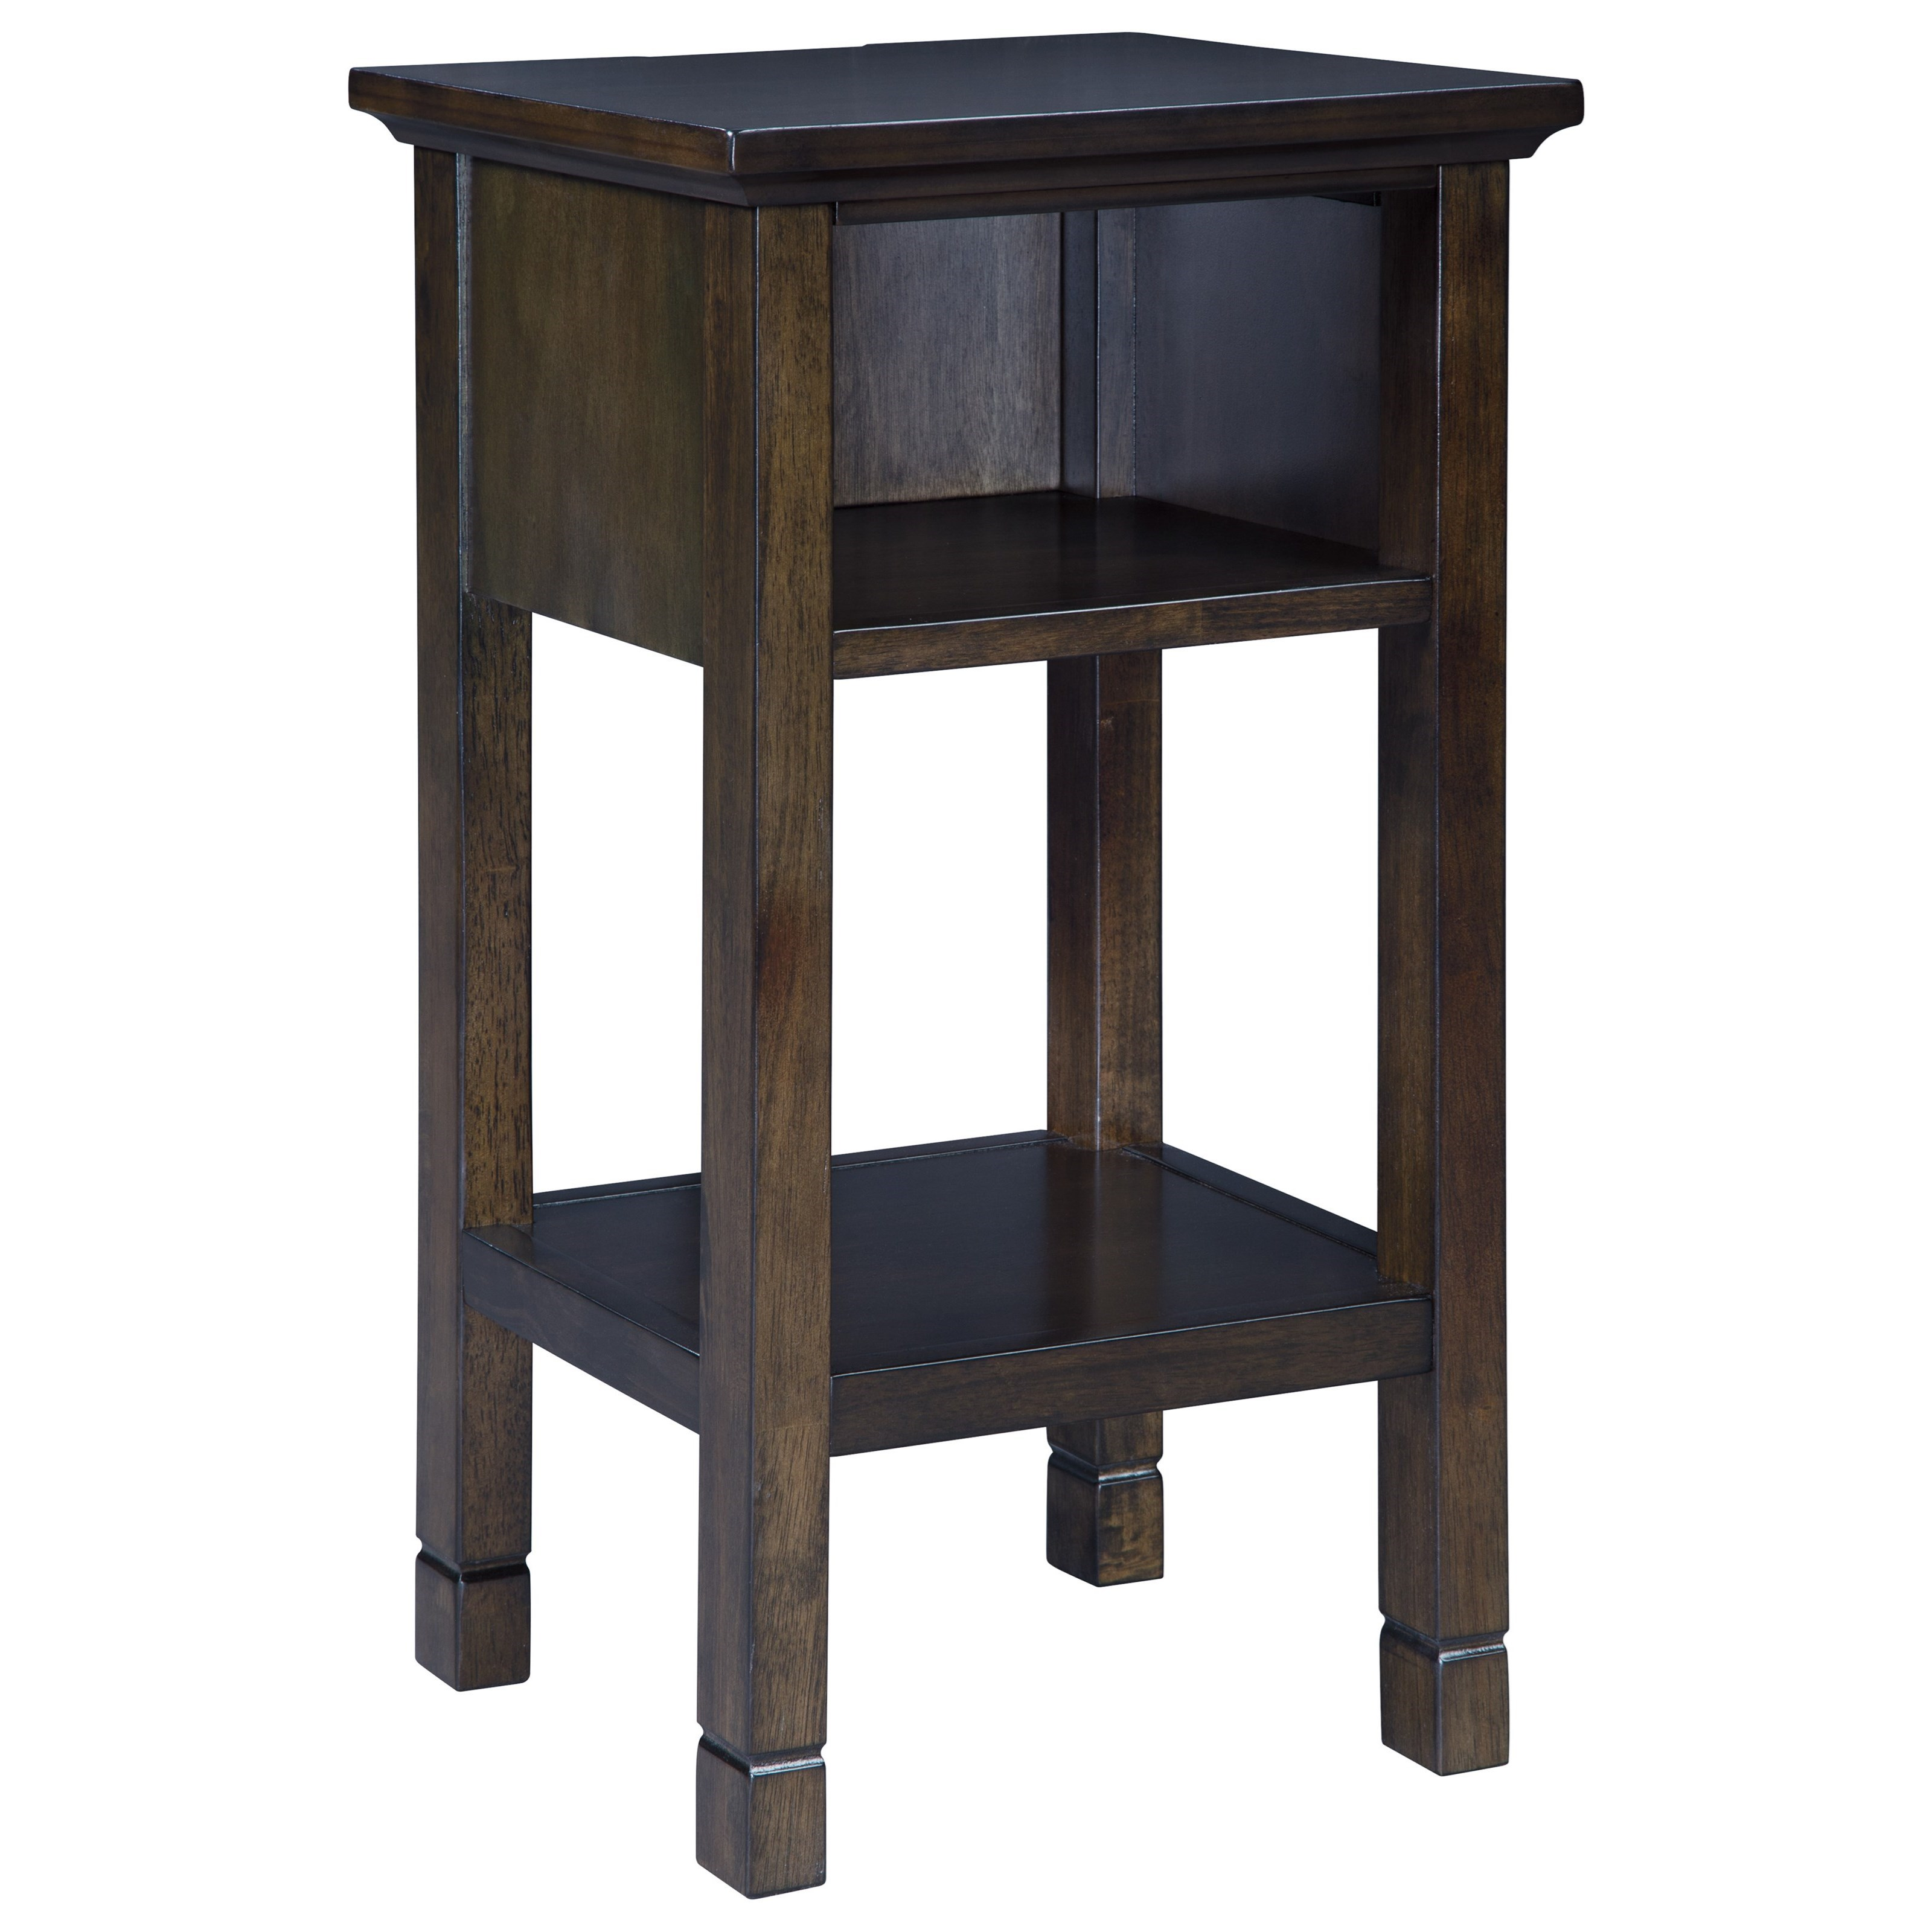 Marnville Accent Table by Ashley (Signature Design) at Johnny Janosik